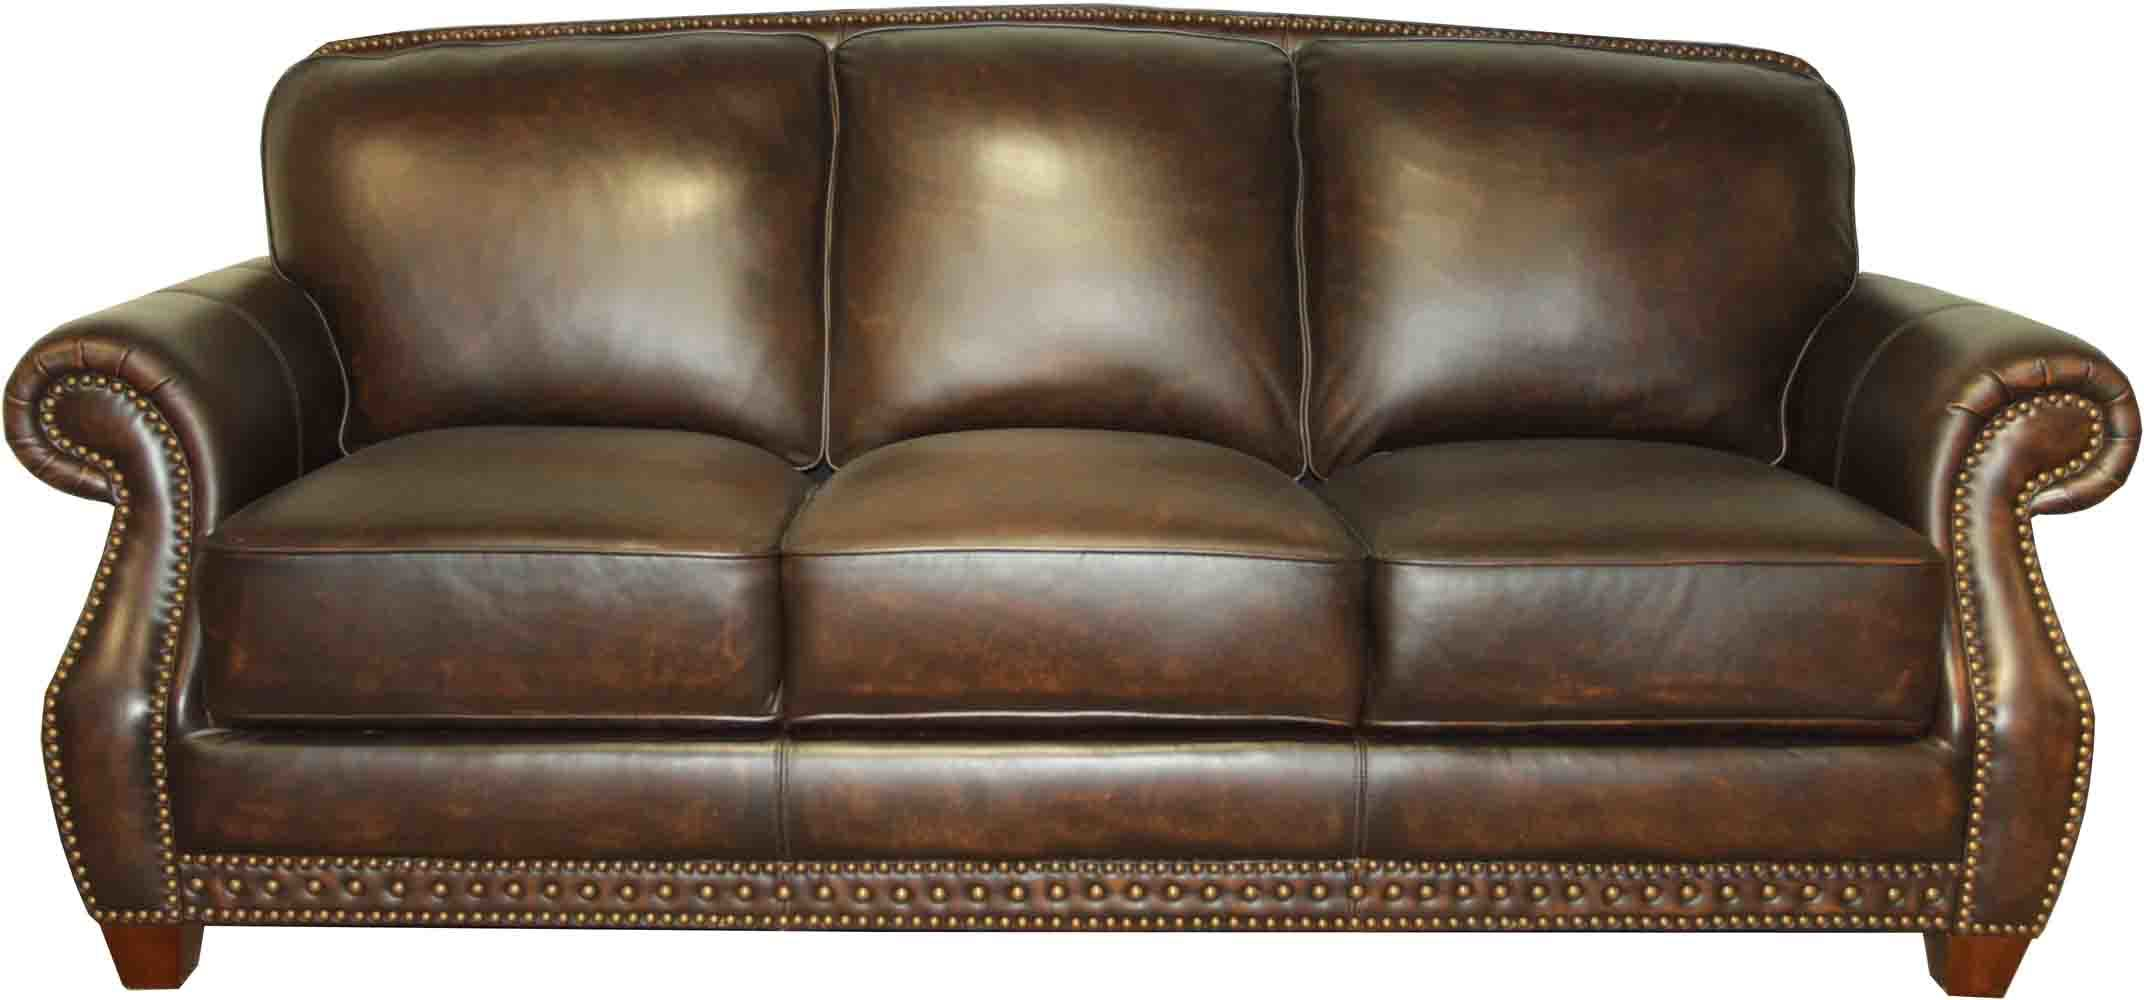 china leather sofa cm5002 china hand rub leather sofa On furniture leather sofa